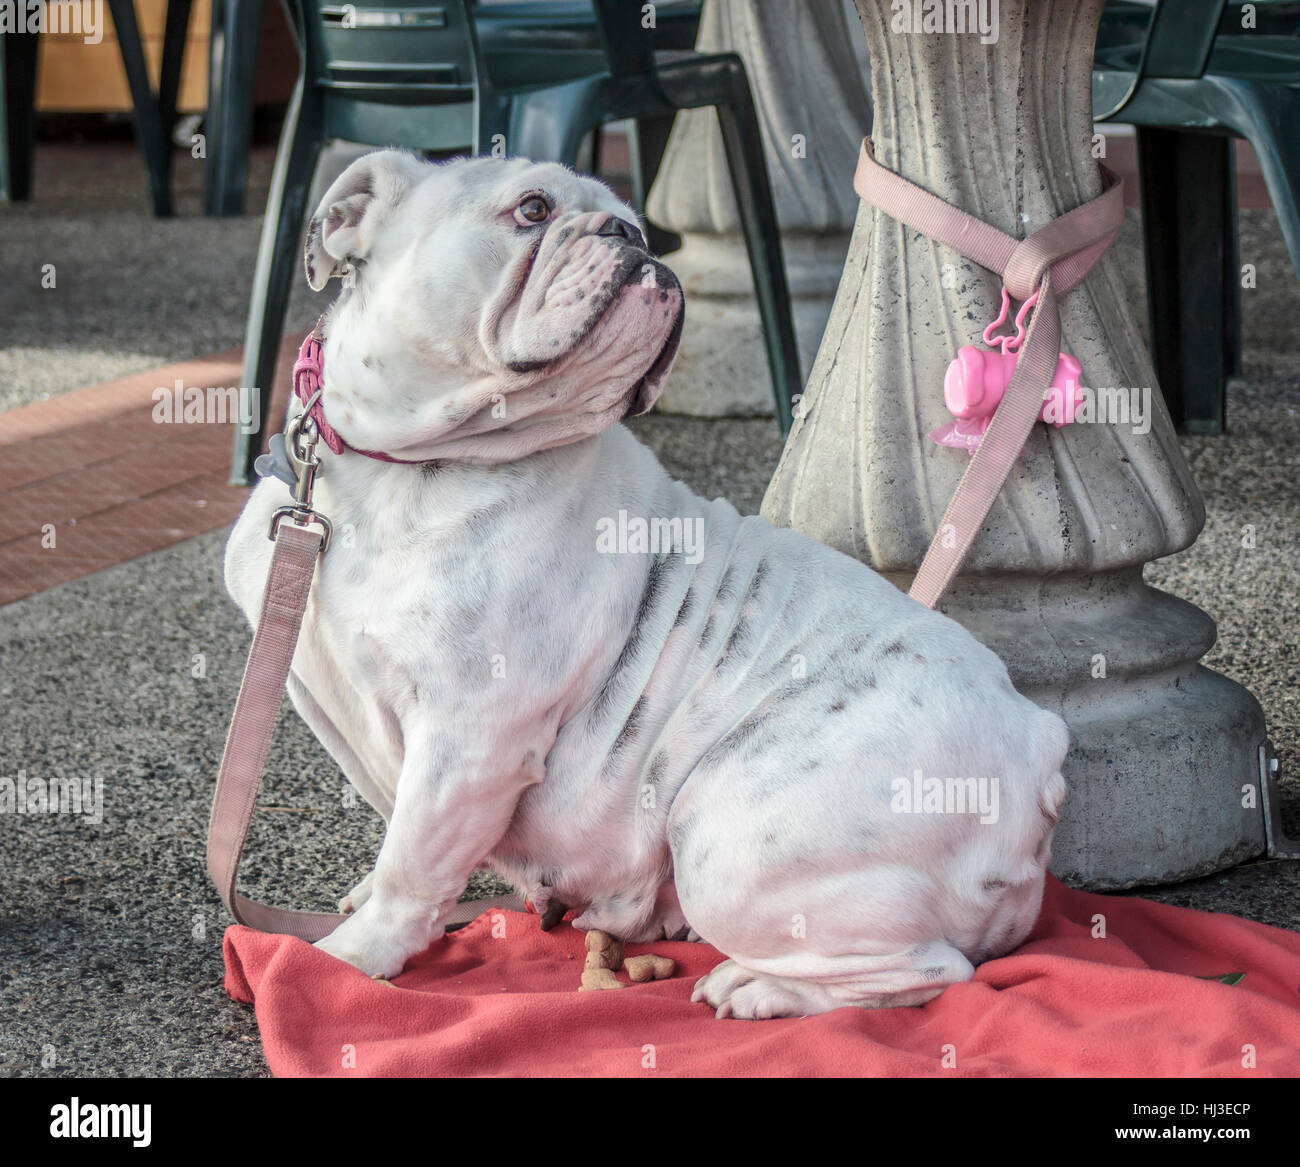 A wrinkled, white bulldog with a pink collar, leash and blanket gazes lovingly at her owner from under an outdoor - Stock Image